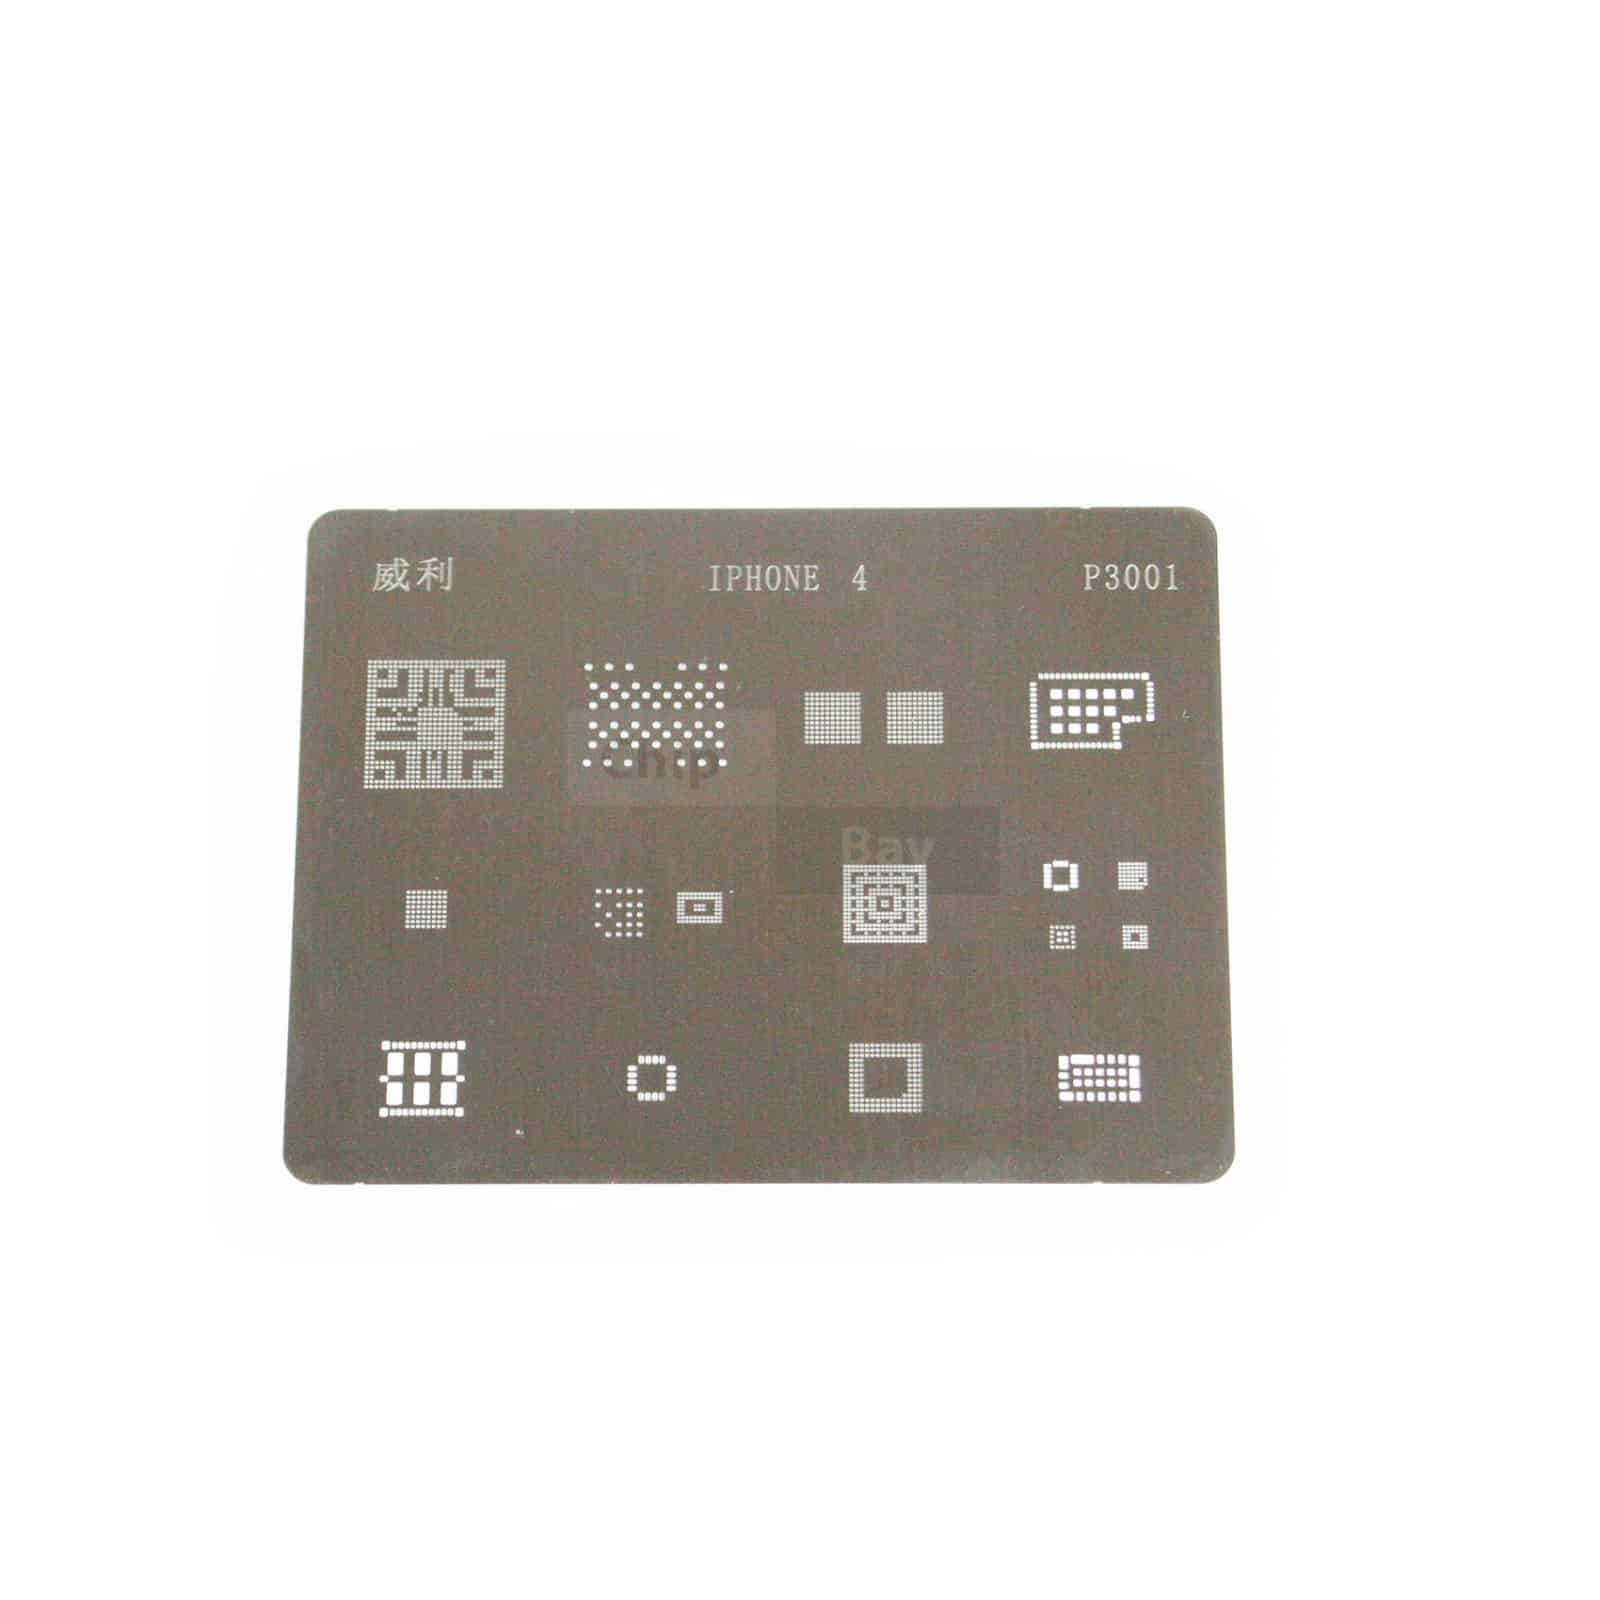 hight resolution of direct heating bga stencil for apple iphone 4 logic board components 16 in 1 chipbay